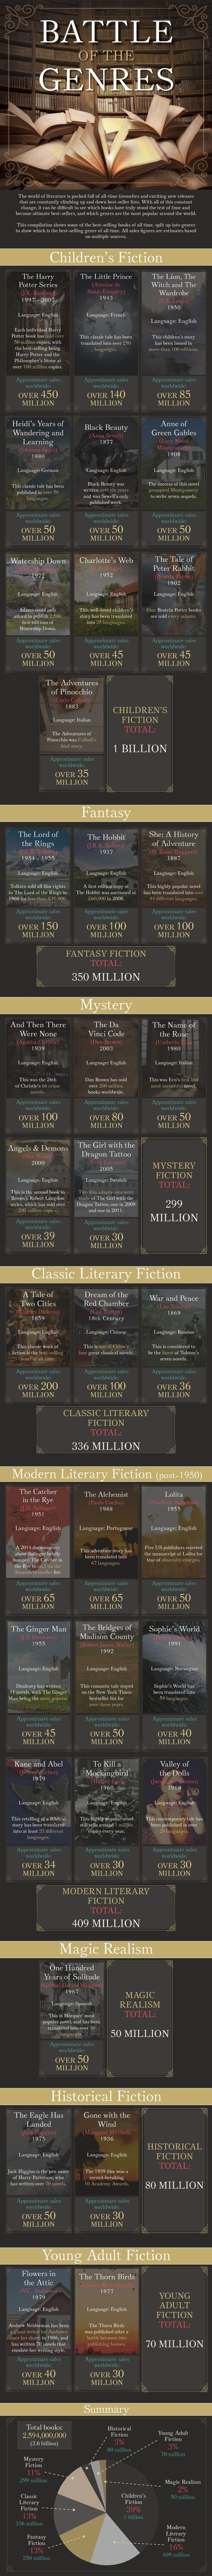 Most Popular Book Genres Of All Time (infographic)